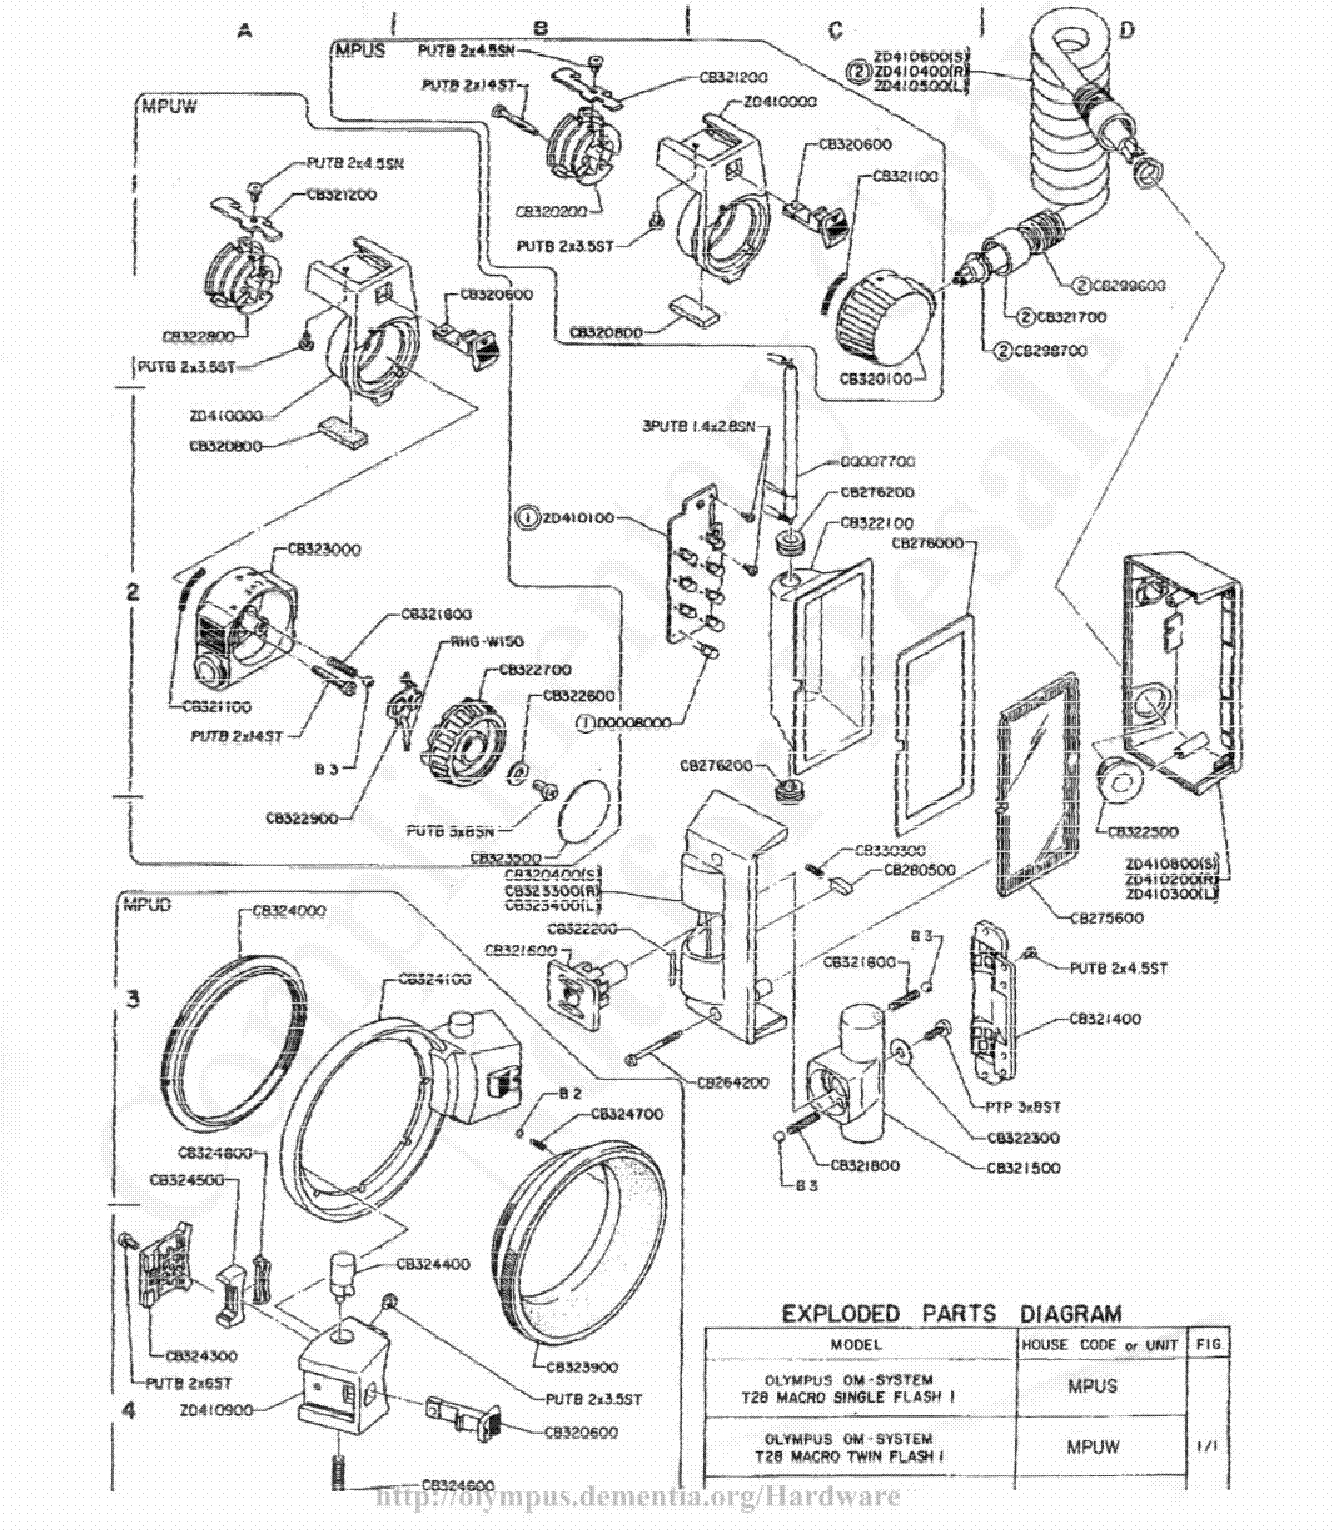 OLYMPUS OM-1 EXPLODED PARTS DIAGRAM Service Manual